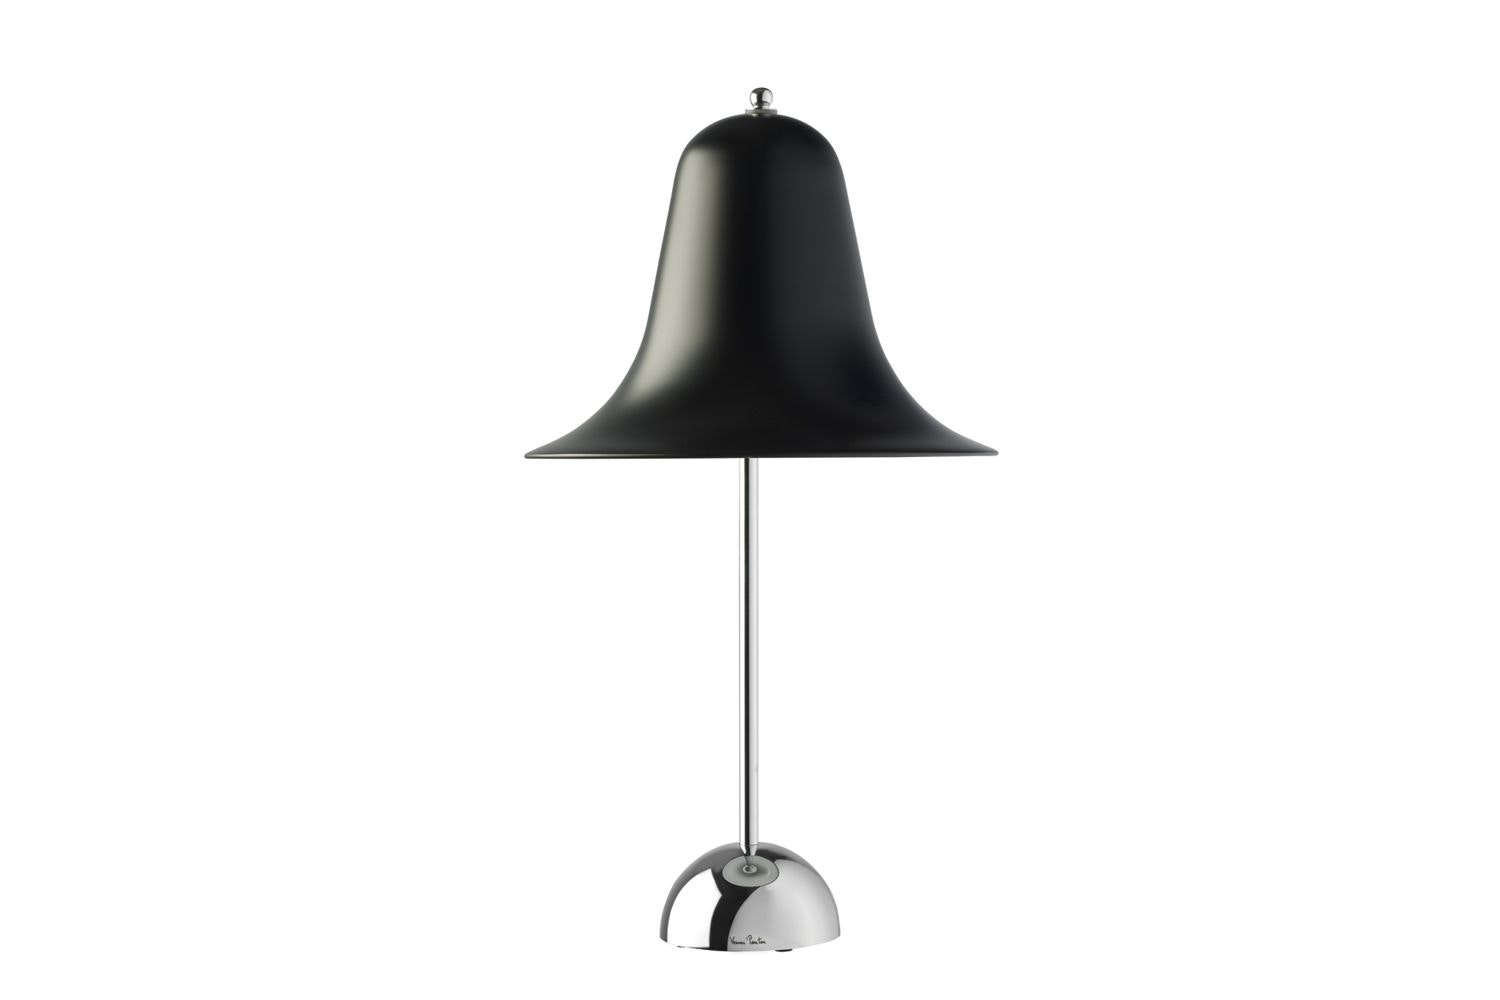 Pantop Table Lamp in Black by Verner Panton for Verpan